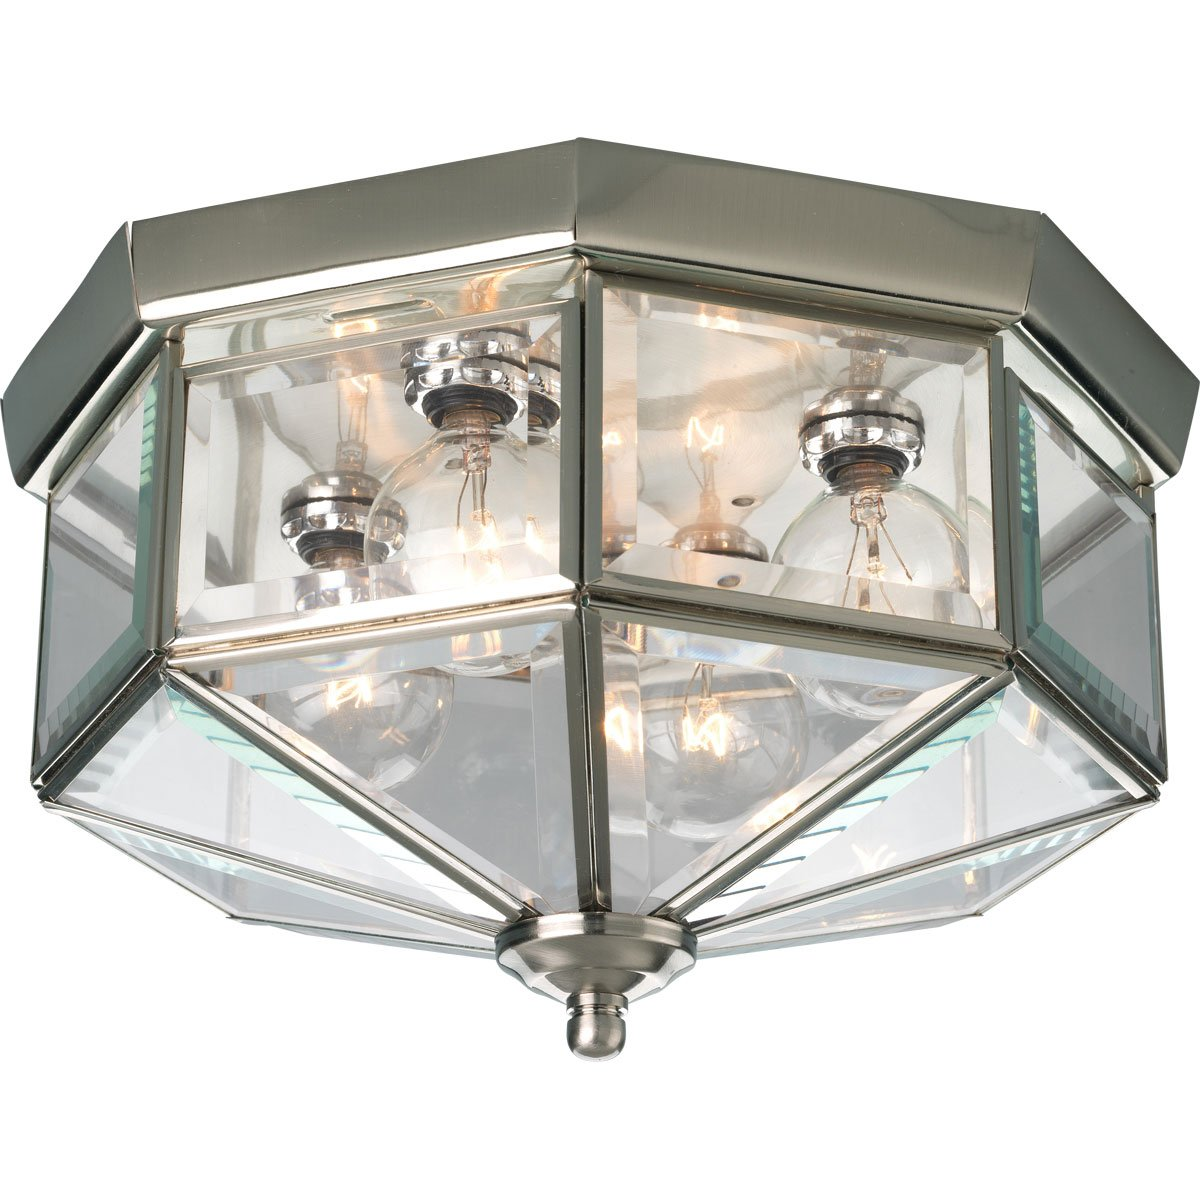 Progress lighting p5789 10 octagonal close to ceiling fixture with progress lighting p5789 10 octagonal close to ceiling fixture with clear bound beveled glass polished brass amazon aloadofball Images